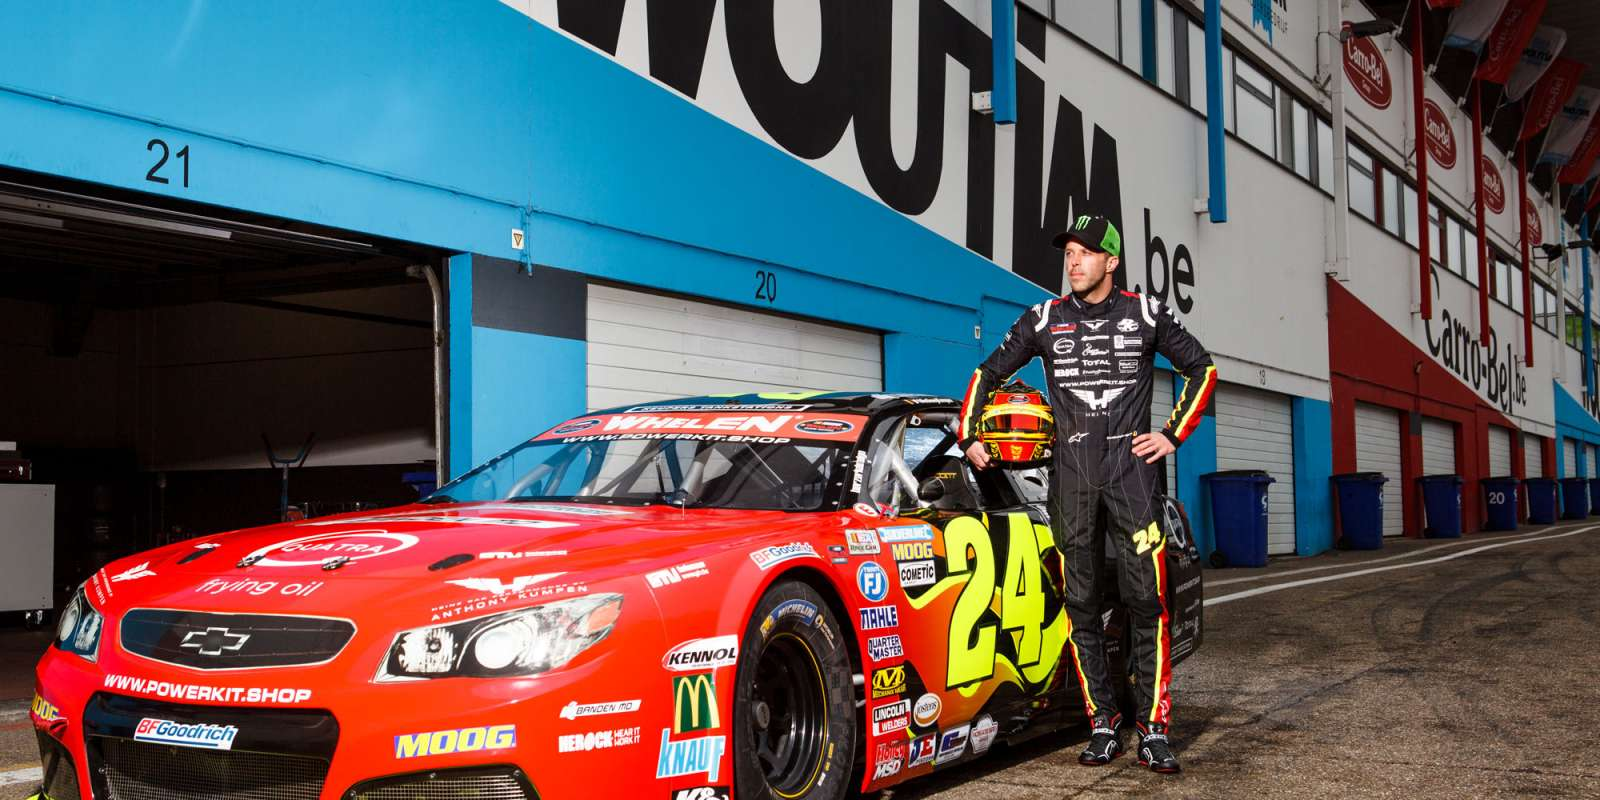 Portraits of Anthony Kumpen with his car on the grid of the Zolder racetrack in Belgium